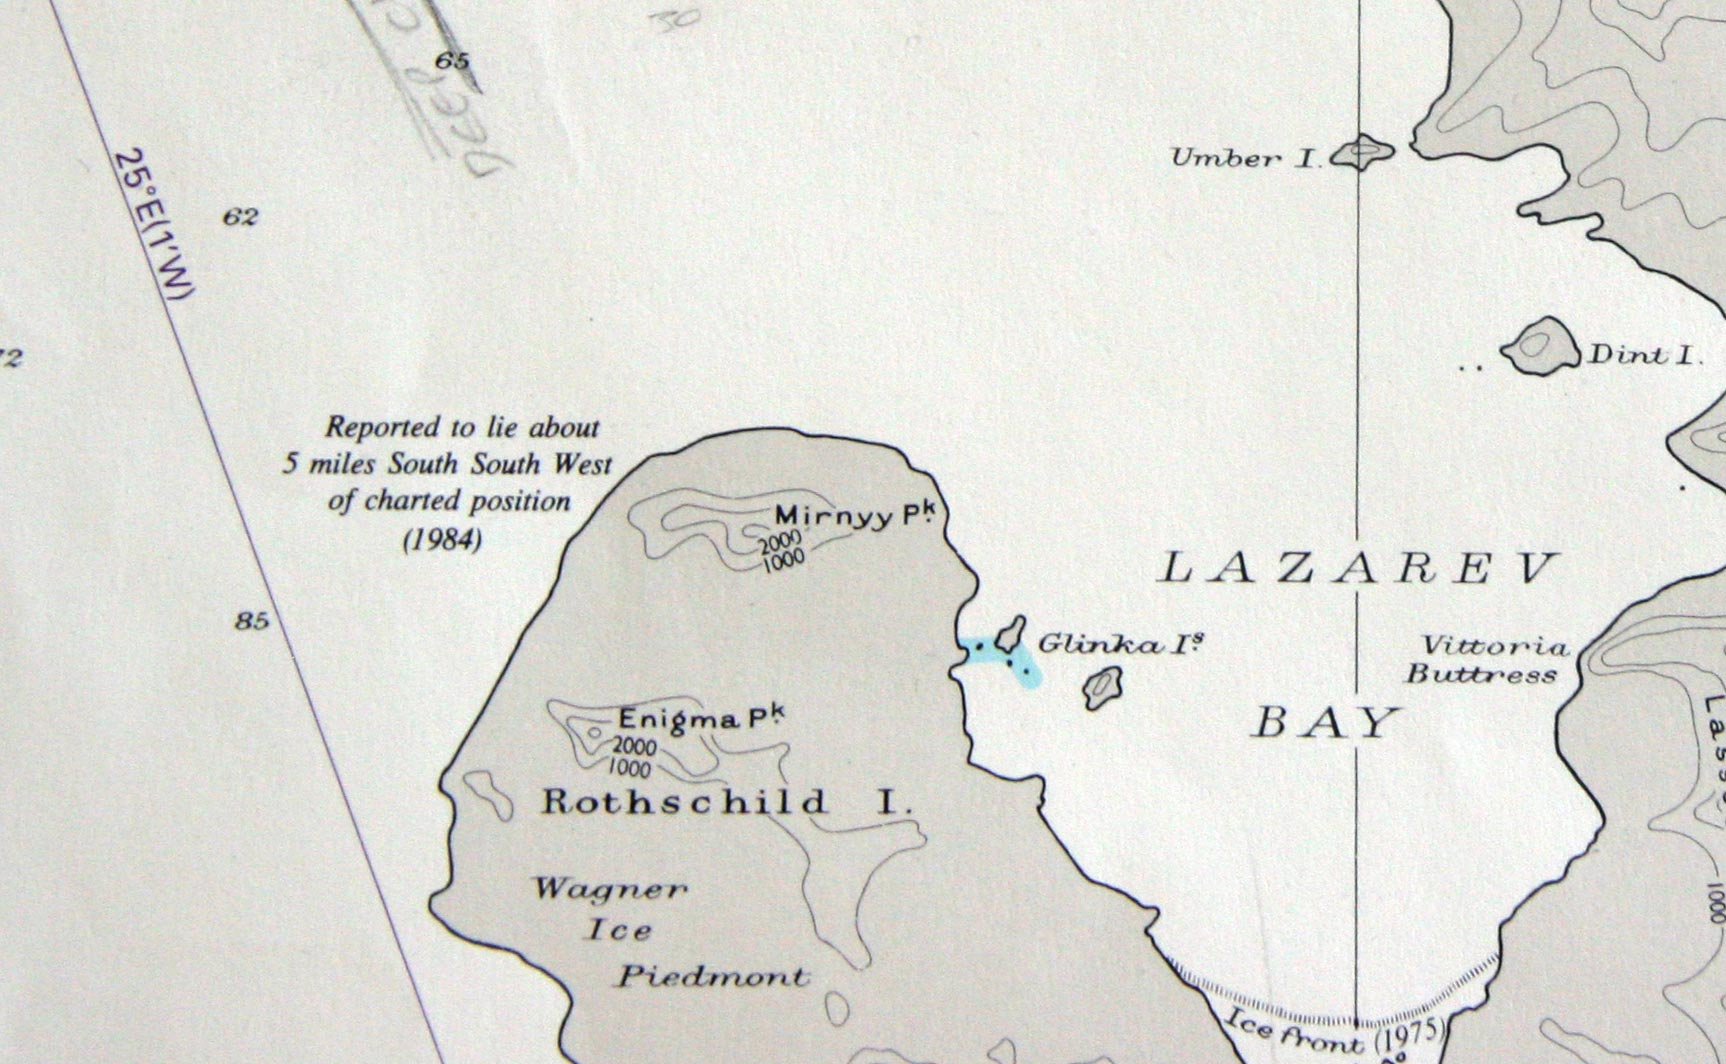 The coastline of Rothschild Island just to the west of Alexander Island, Antarctica. The navigation chart says the coastline location could be 5 miles in error